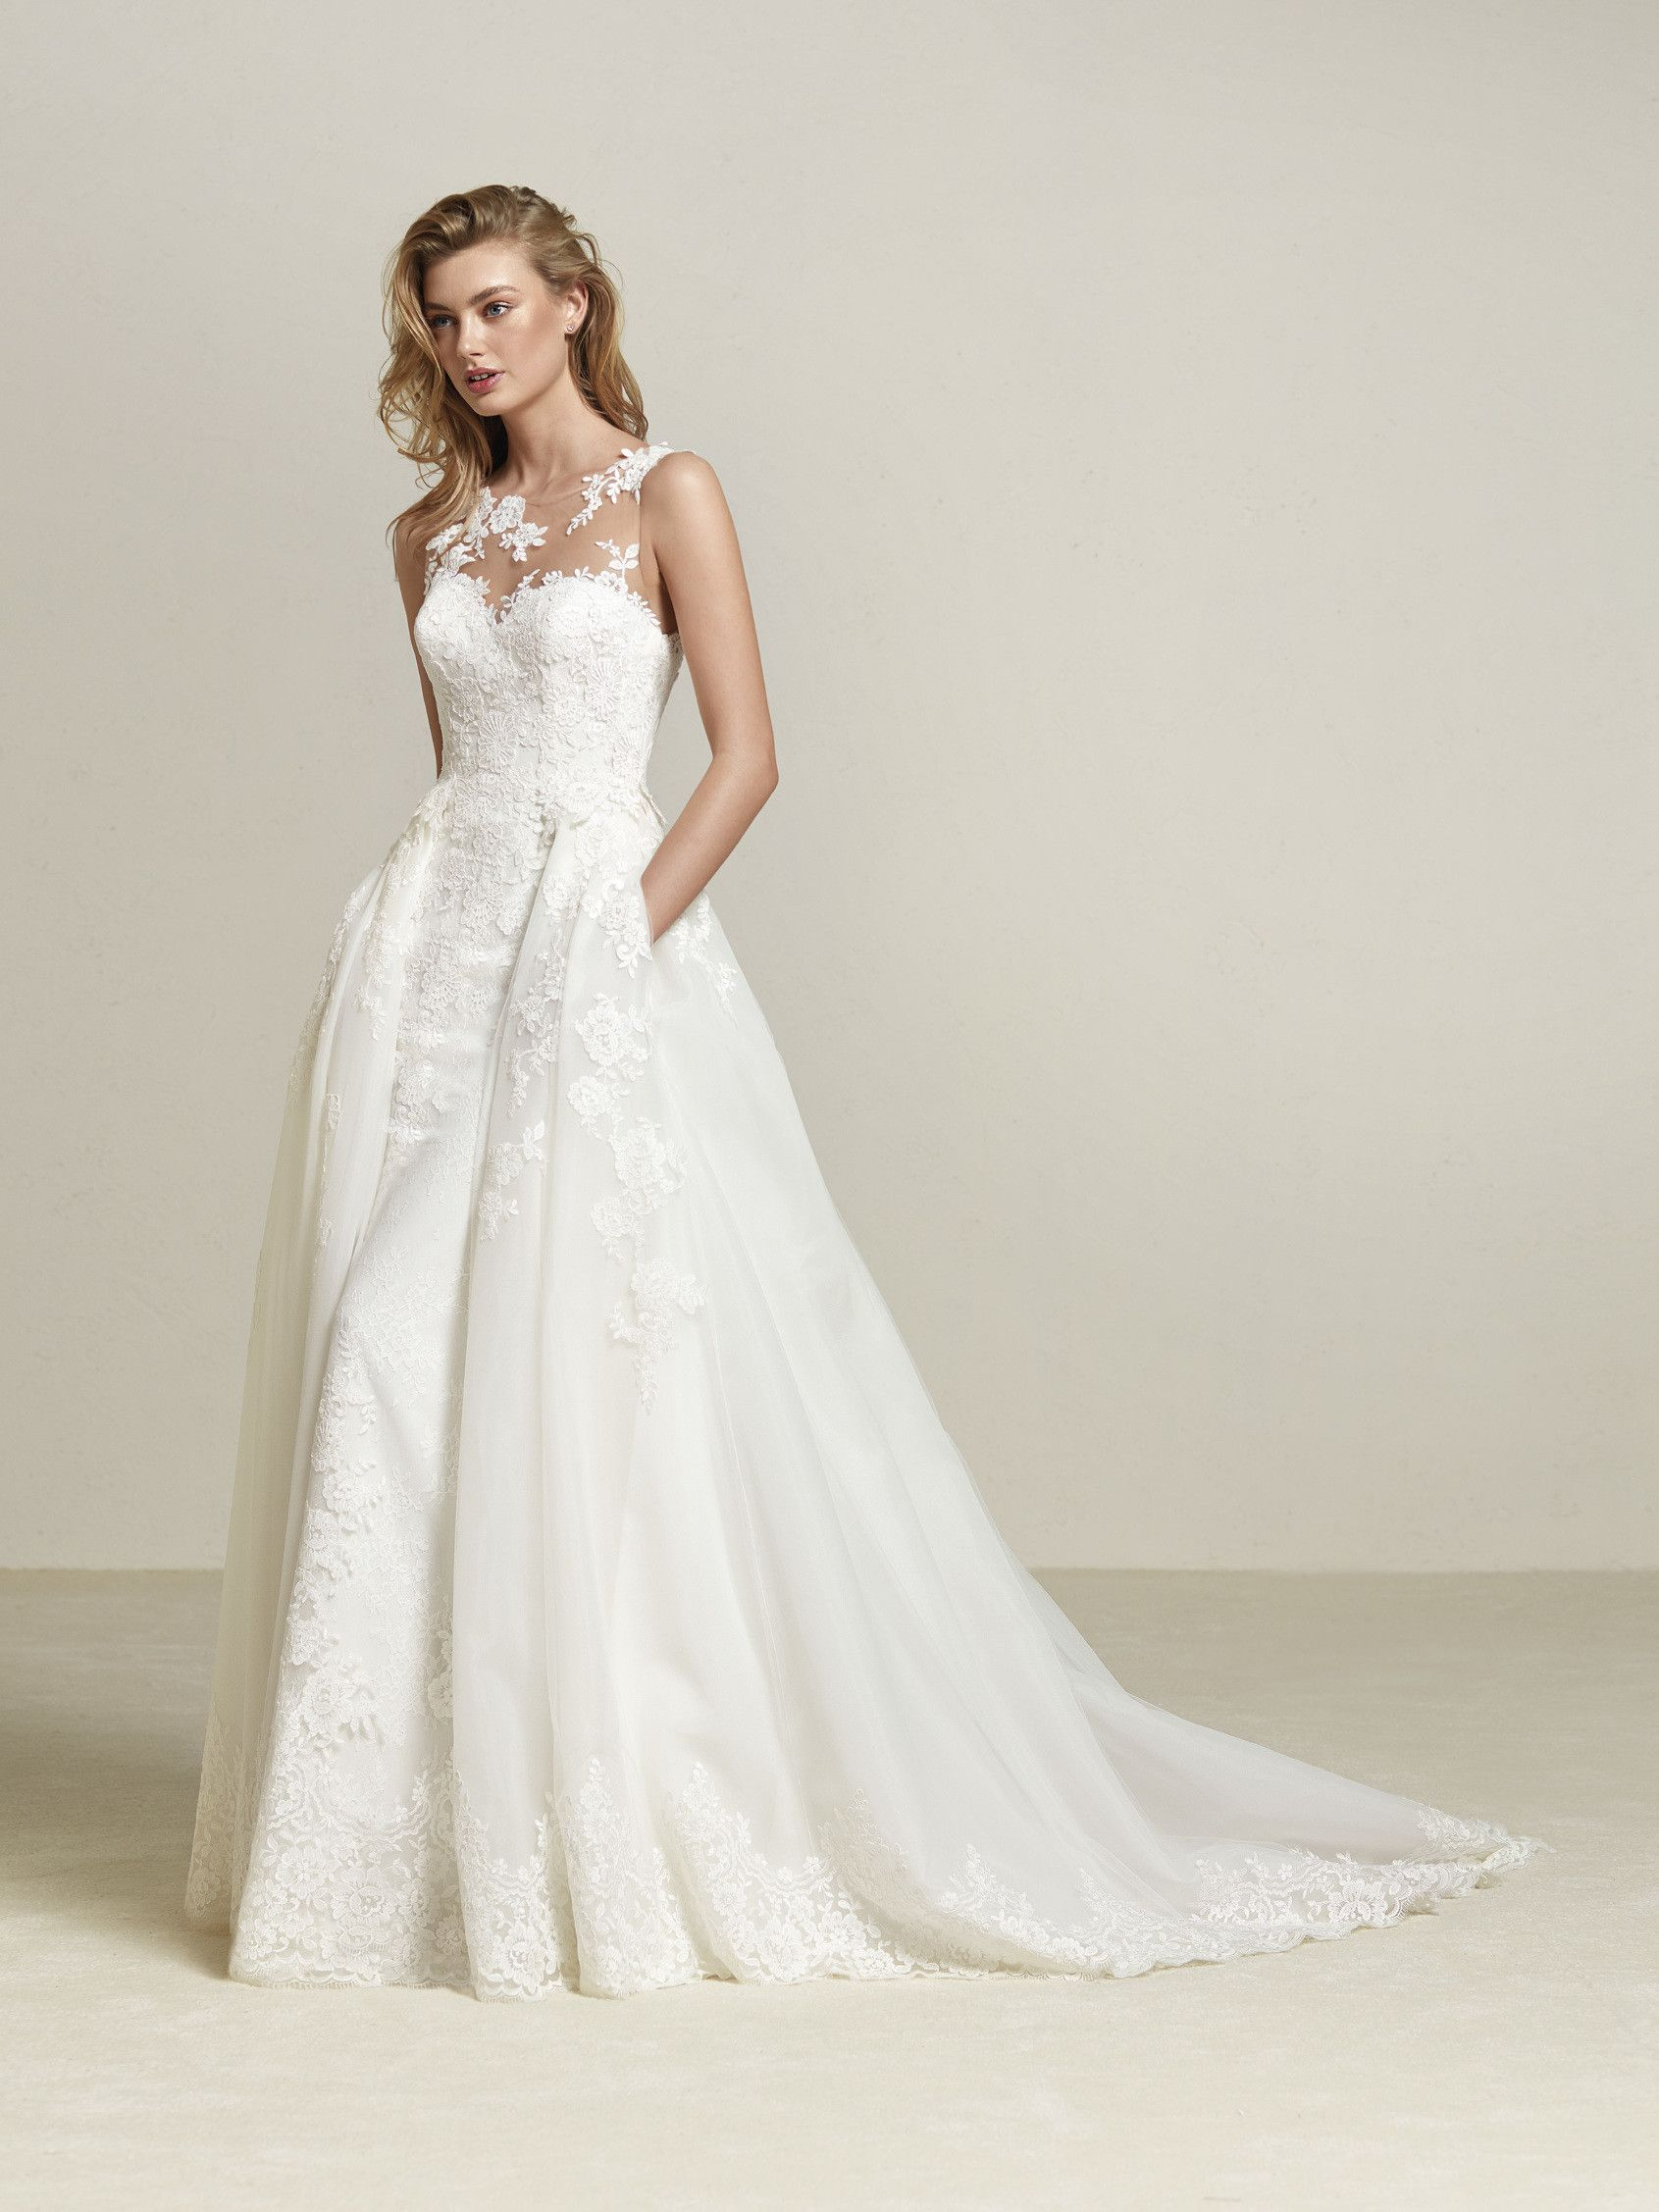 e5027d94f91 Pin by La Belle Mariee Bridal on Pronovias at La Belle Mariée in ...